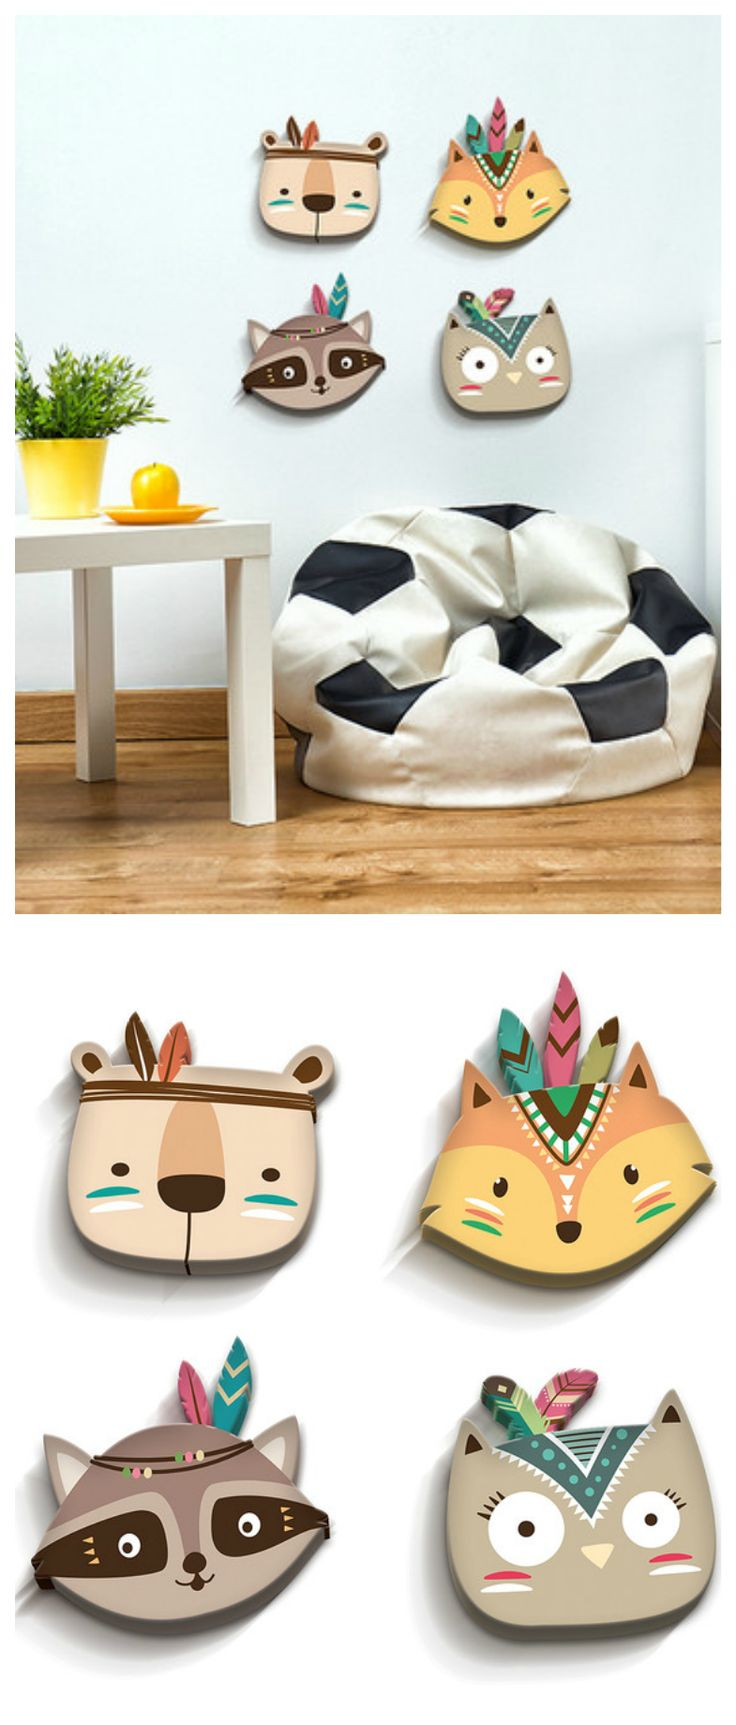 Perfect D Deko f rs Kinderzimmer S e Indianer Tiere als Wanddeko home decor for the